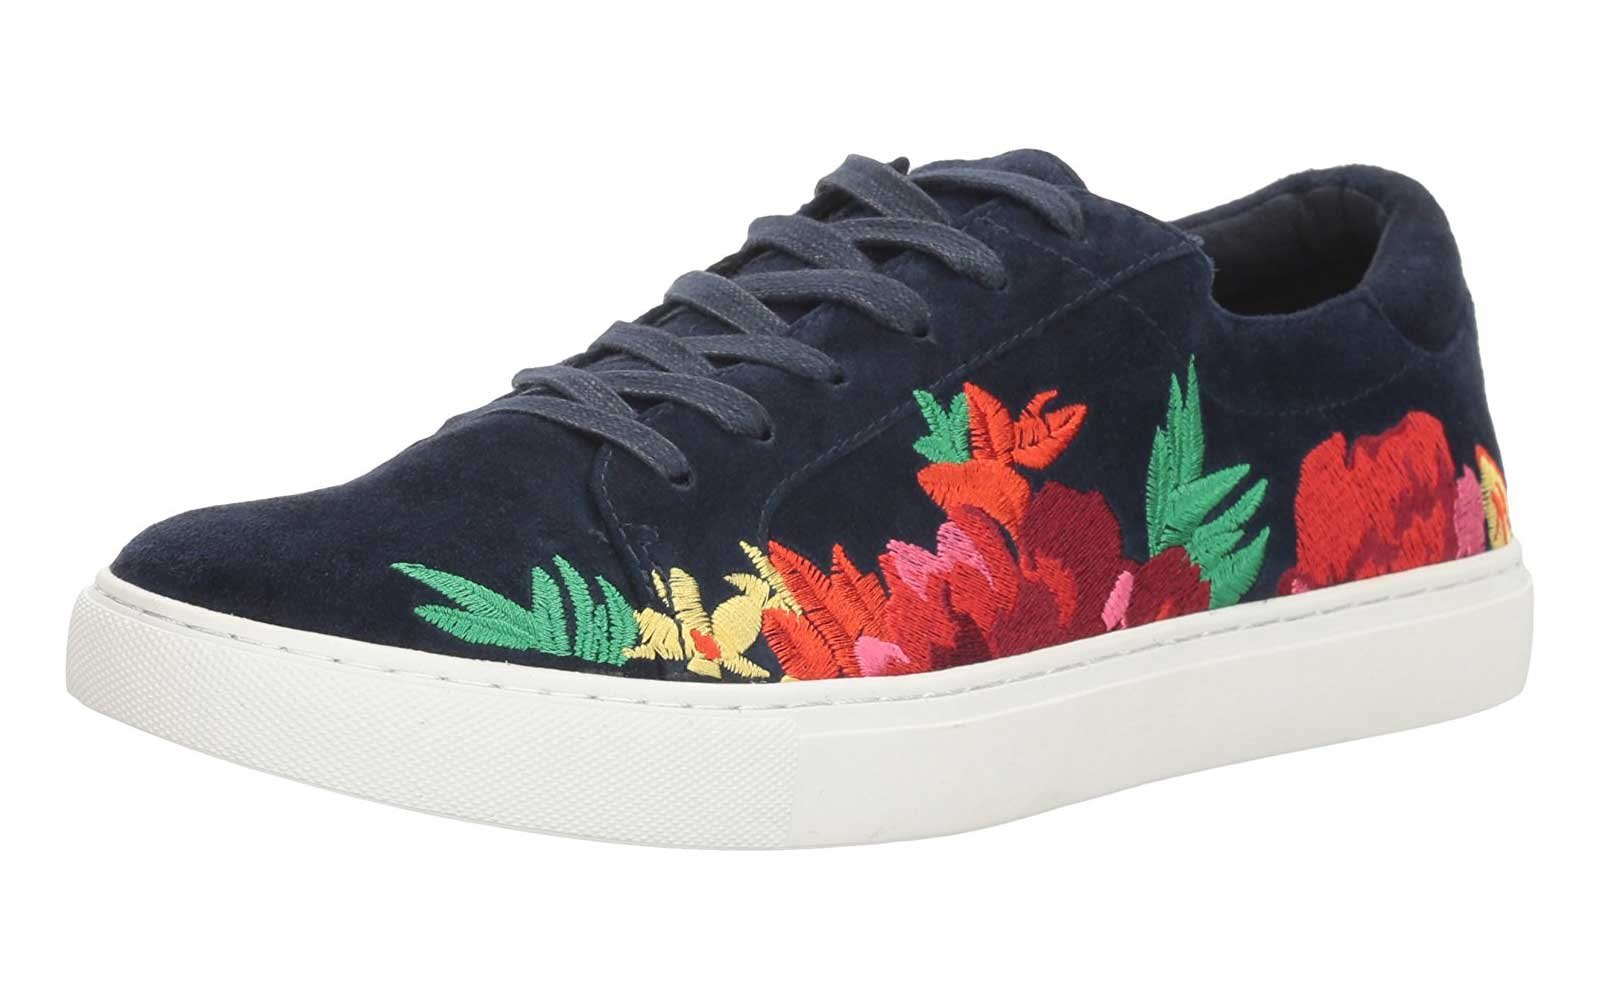 Floral Sneakers for Fall